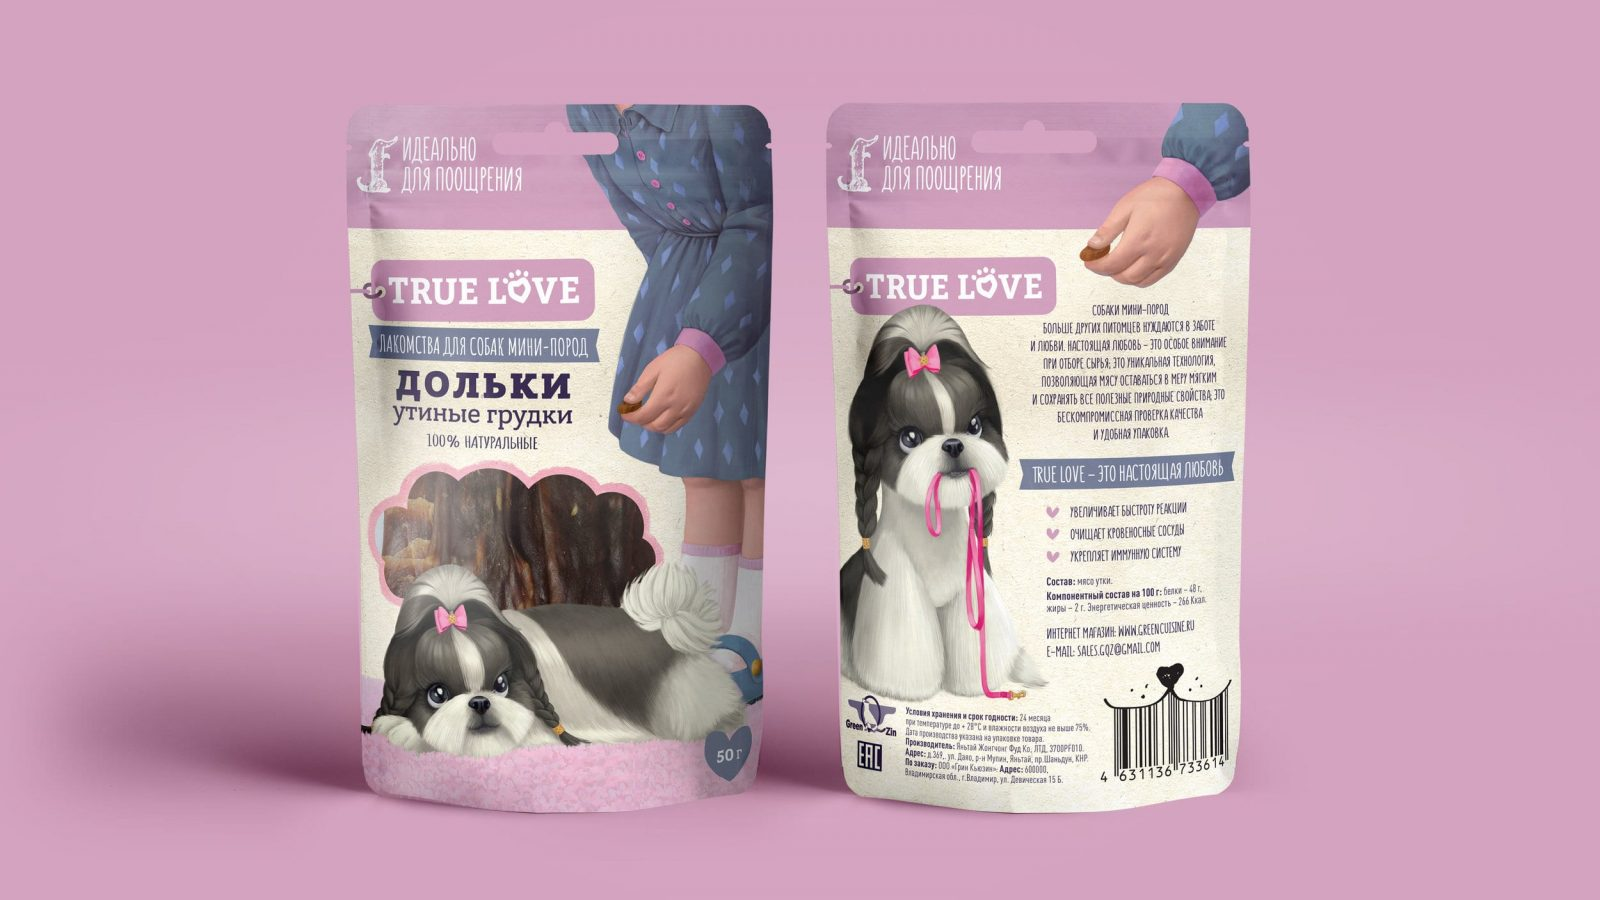 True Love- Delicious Treat for the Small and Tiny Dog Breeds